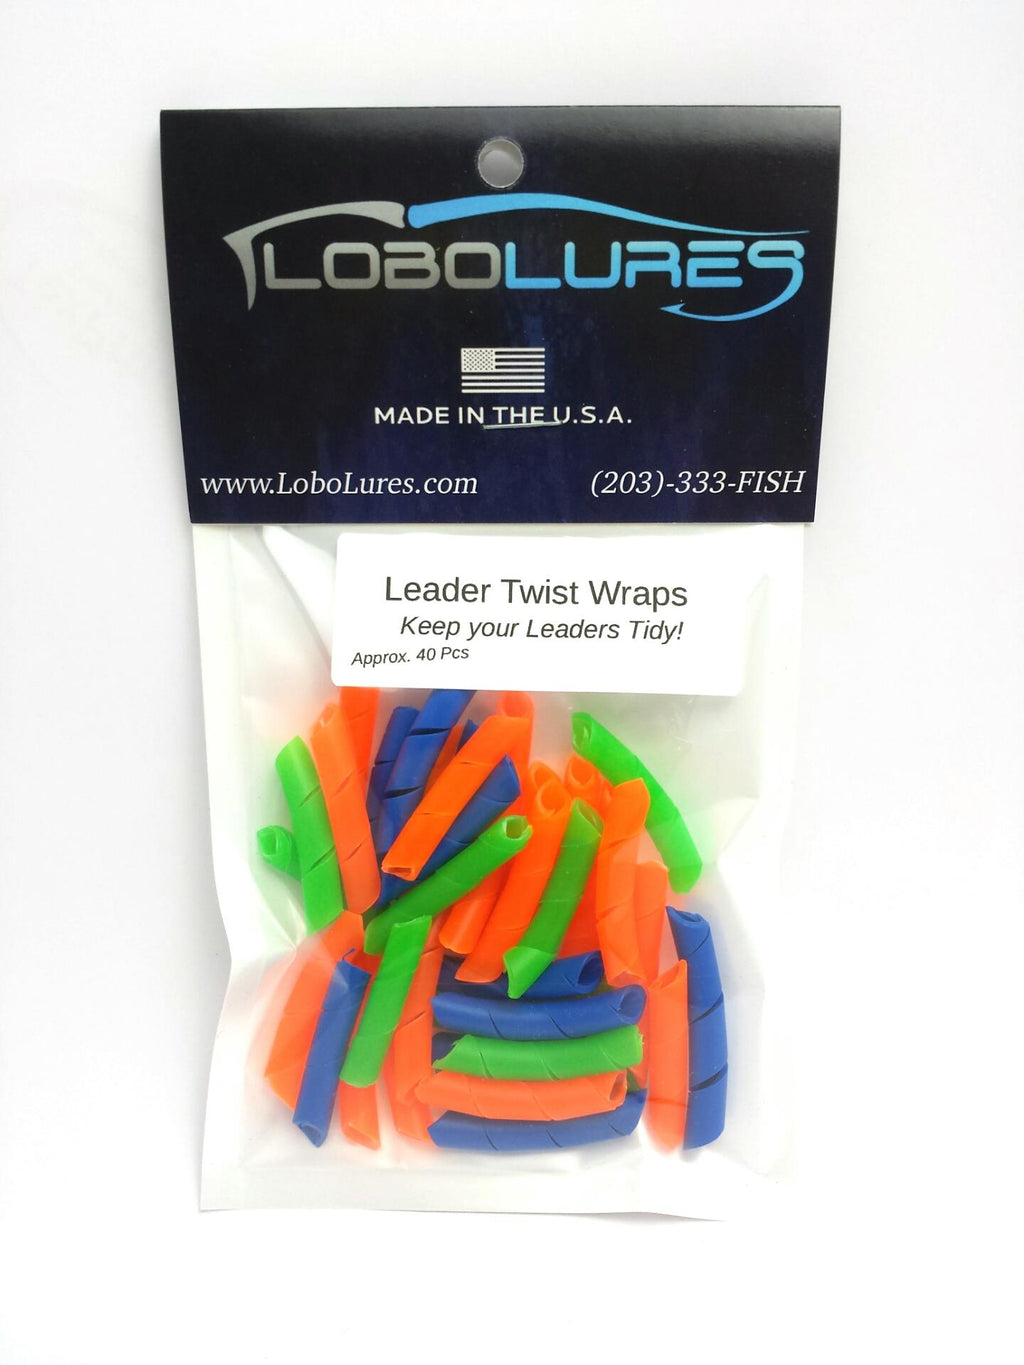 Lobo Lures Leader Twist Wraps